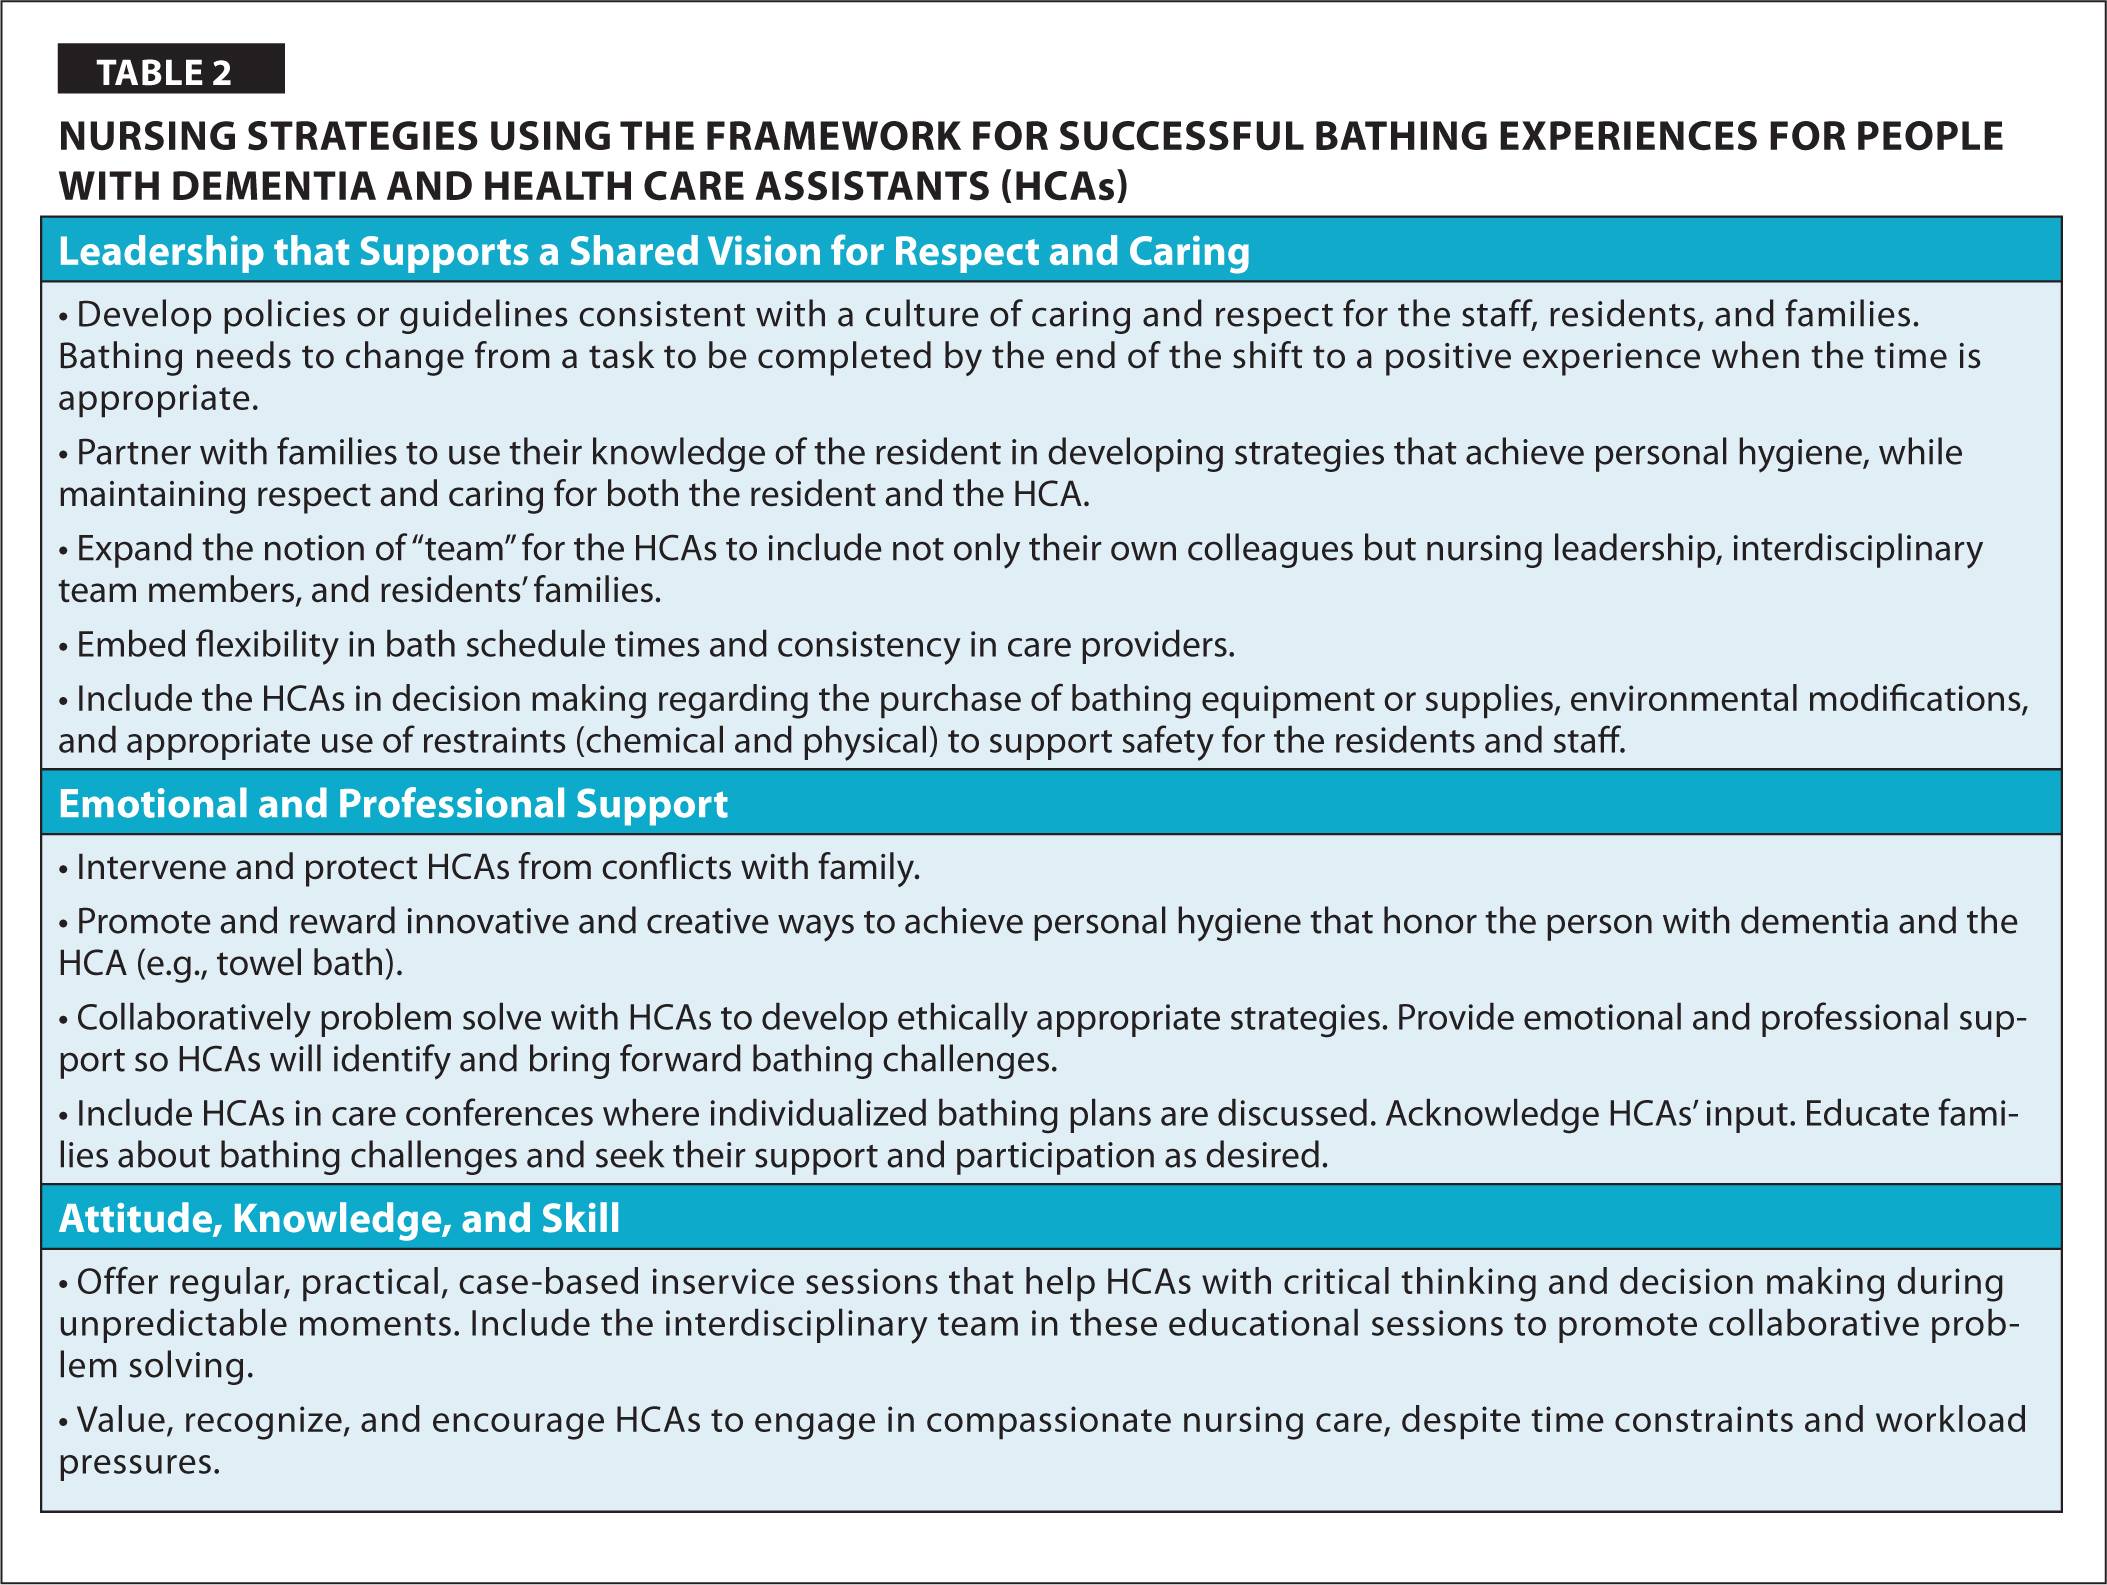 Nursing Strategies Using the Framework for Successful Bathing Experiences for People with Dementia and Health Care Assistants (HCAs)